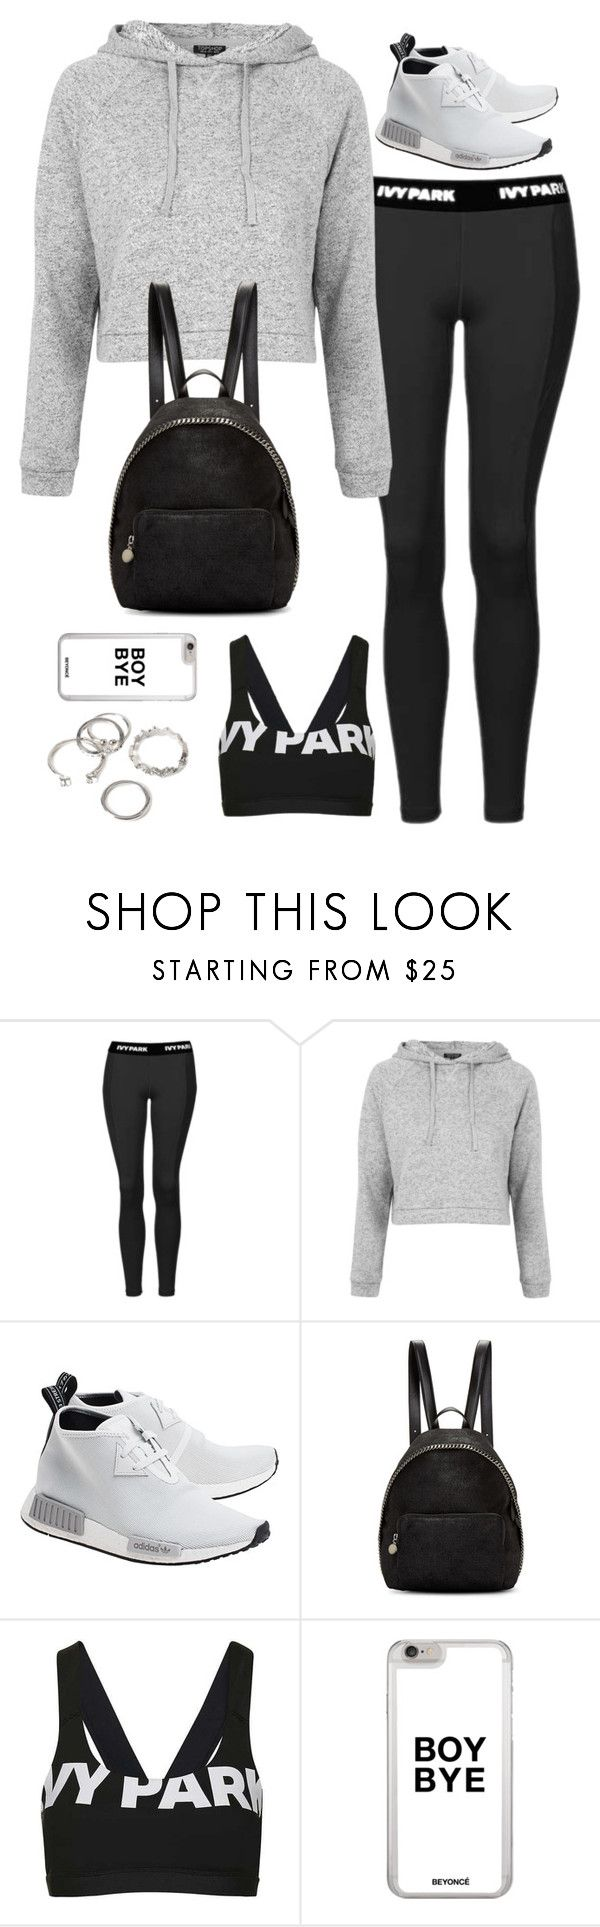 """""""Untitled#4559"""" by fashionnfacts ❤ liked on Polyvore featuring Topshop, adidas Originals, STELLA McCARTNEY and Forever 21"""